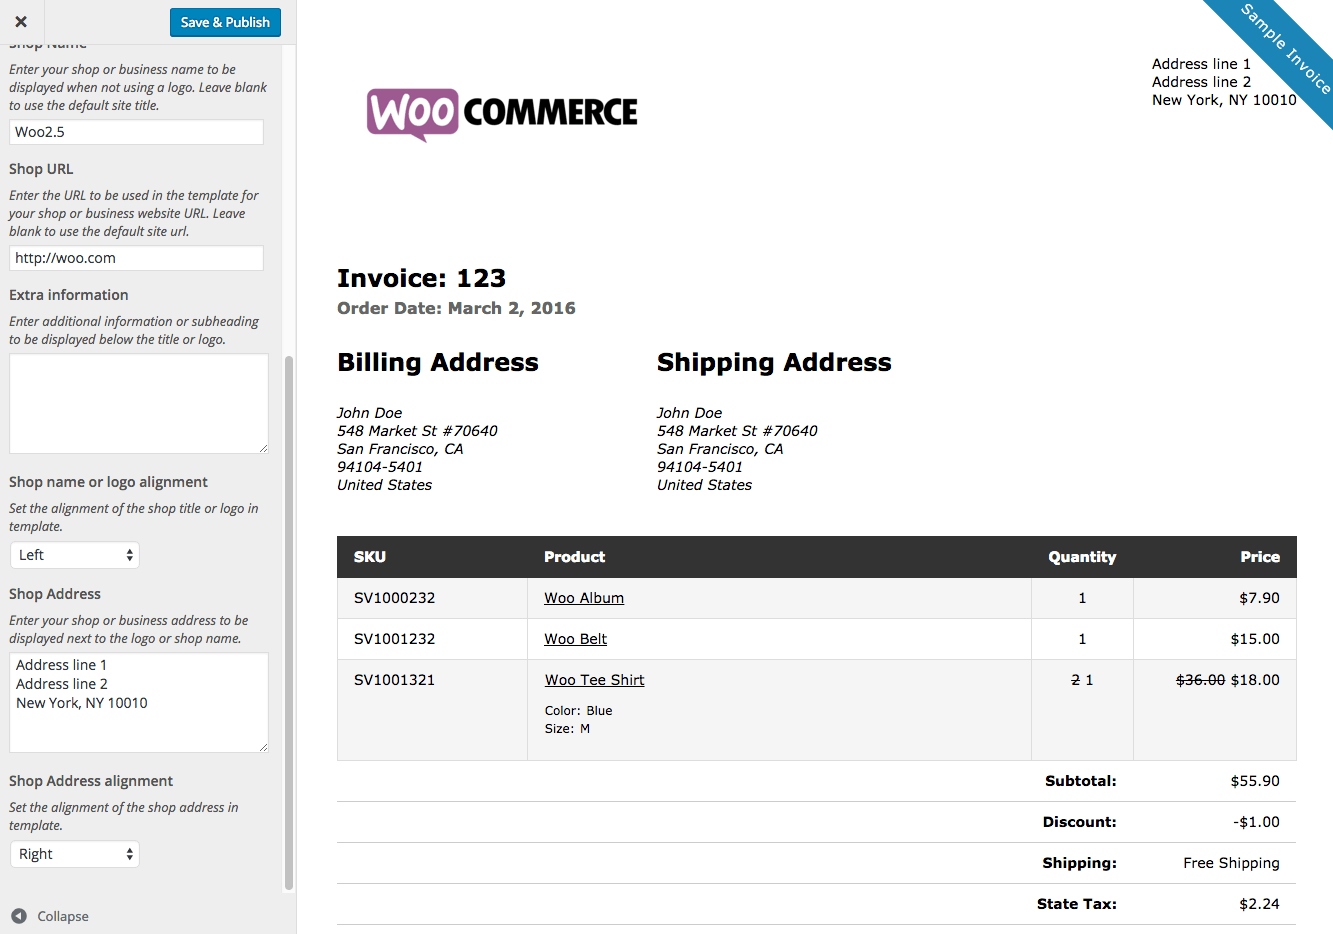 Musclebuildingtipsus  Seductive Print Invoices Amp Packing Lists  Woocommerce With Interesting Woocommerce Print Invoices  Packing Lists Customizer With Endearing Simple Invoices Templates Also Free Invoices Online Printable In Addition Twilight Princess Invoice And Free Templates For Invoices Printable As Well As  Forester Invoice Price Additionally Invoice Price On Car From Woocommercecom With Musclebuildingtipsus  Interesting Print Invoices Amp Packing Lists  Woocommerce With Endearing Woocommerce Print Invoices  Packing Lists Customizer And Seductive Simple Invoices Templates Also Free Invoices Online Printable In Addition Twilight Princess Invoice From Woocommercecom